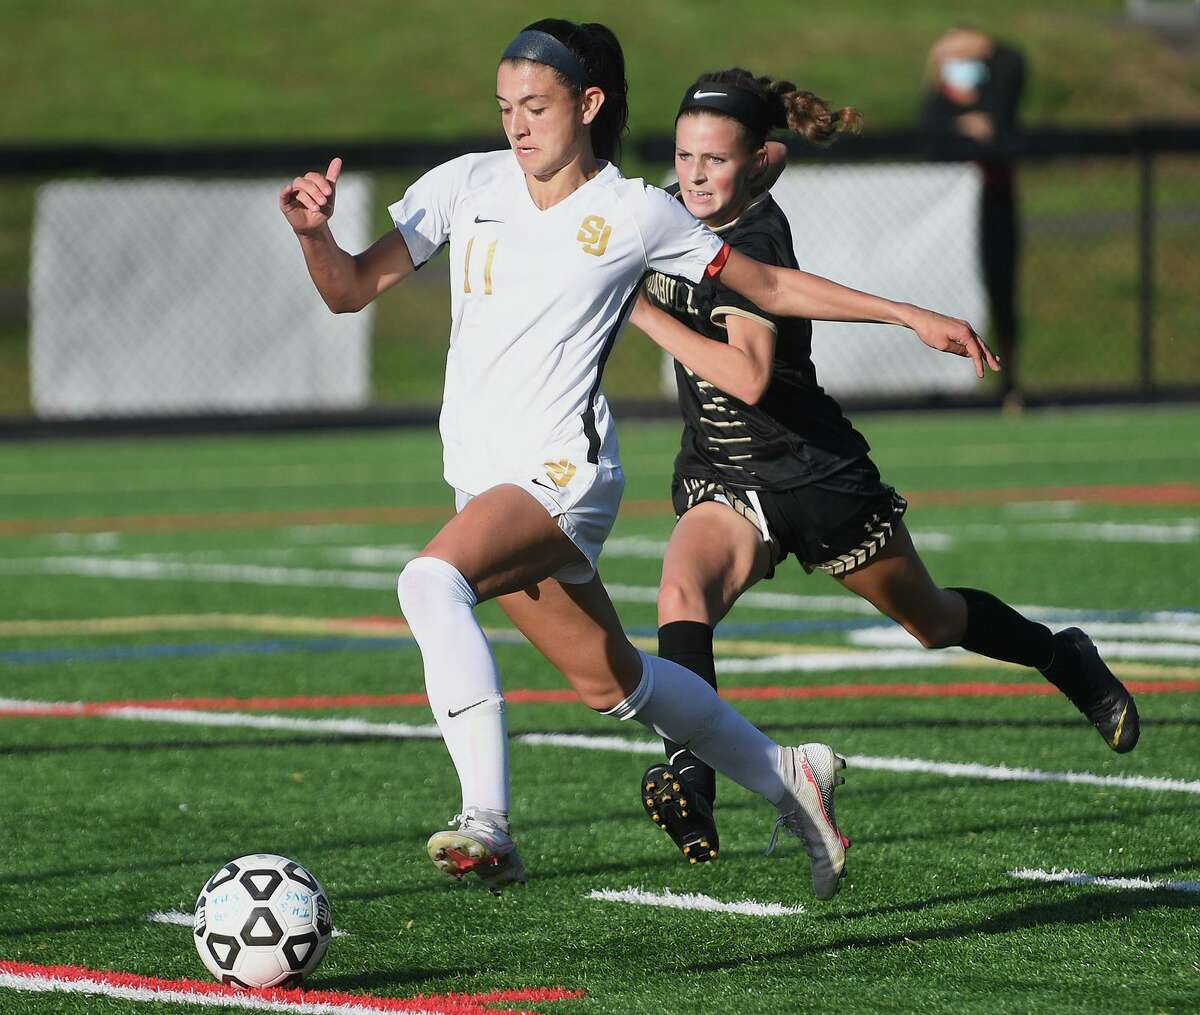 St. Joseph's Maddie Fried races in toward goal ahead of Trumbull defender Megan Garrity during their girls soccer match at Trumbull High School in Trumbull, Conn. on Thursday, October 15, 2020.